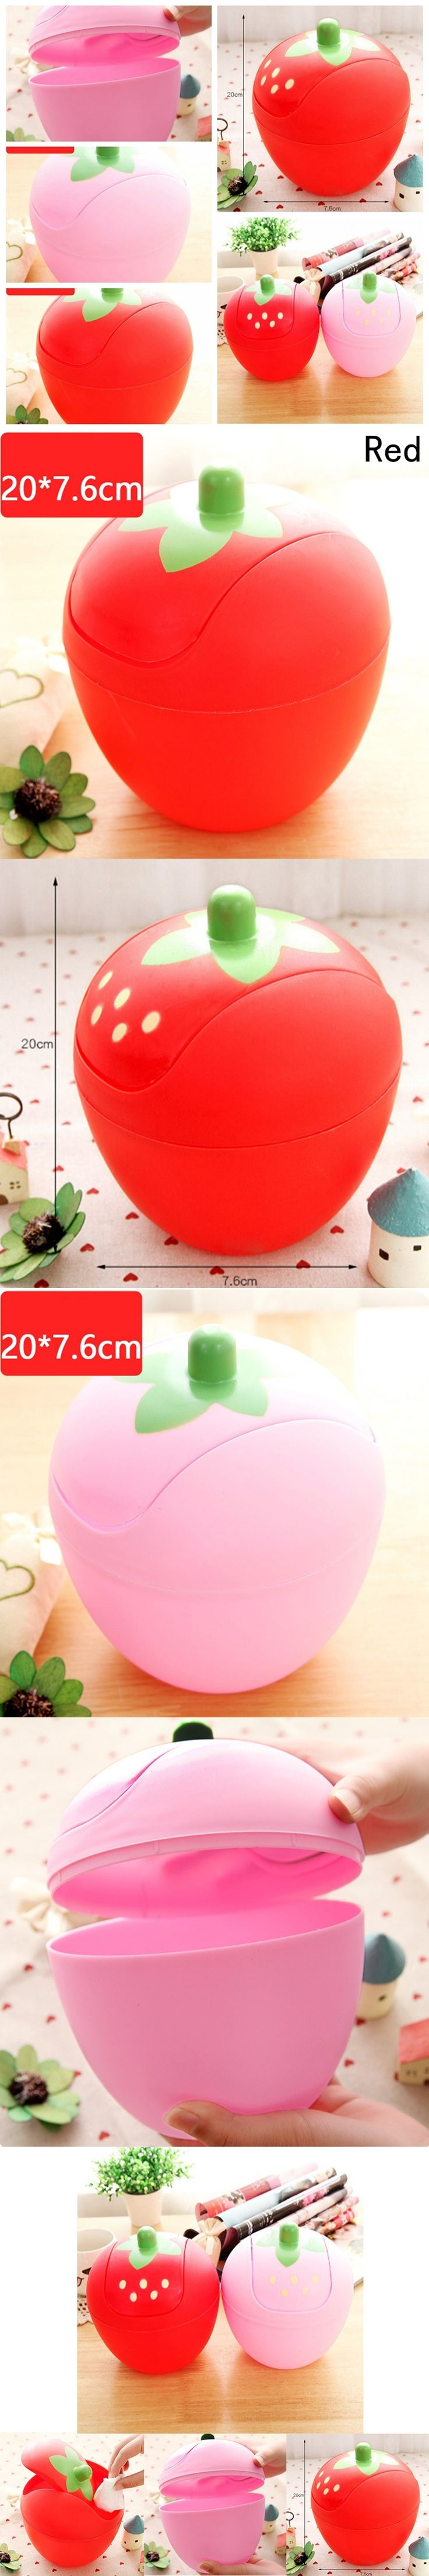 1Pcs Strawberry Shape Mini Trash Can with Lid Home Office Desktop Plastic Garbage Waste Bins Storage Boxes